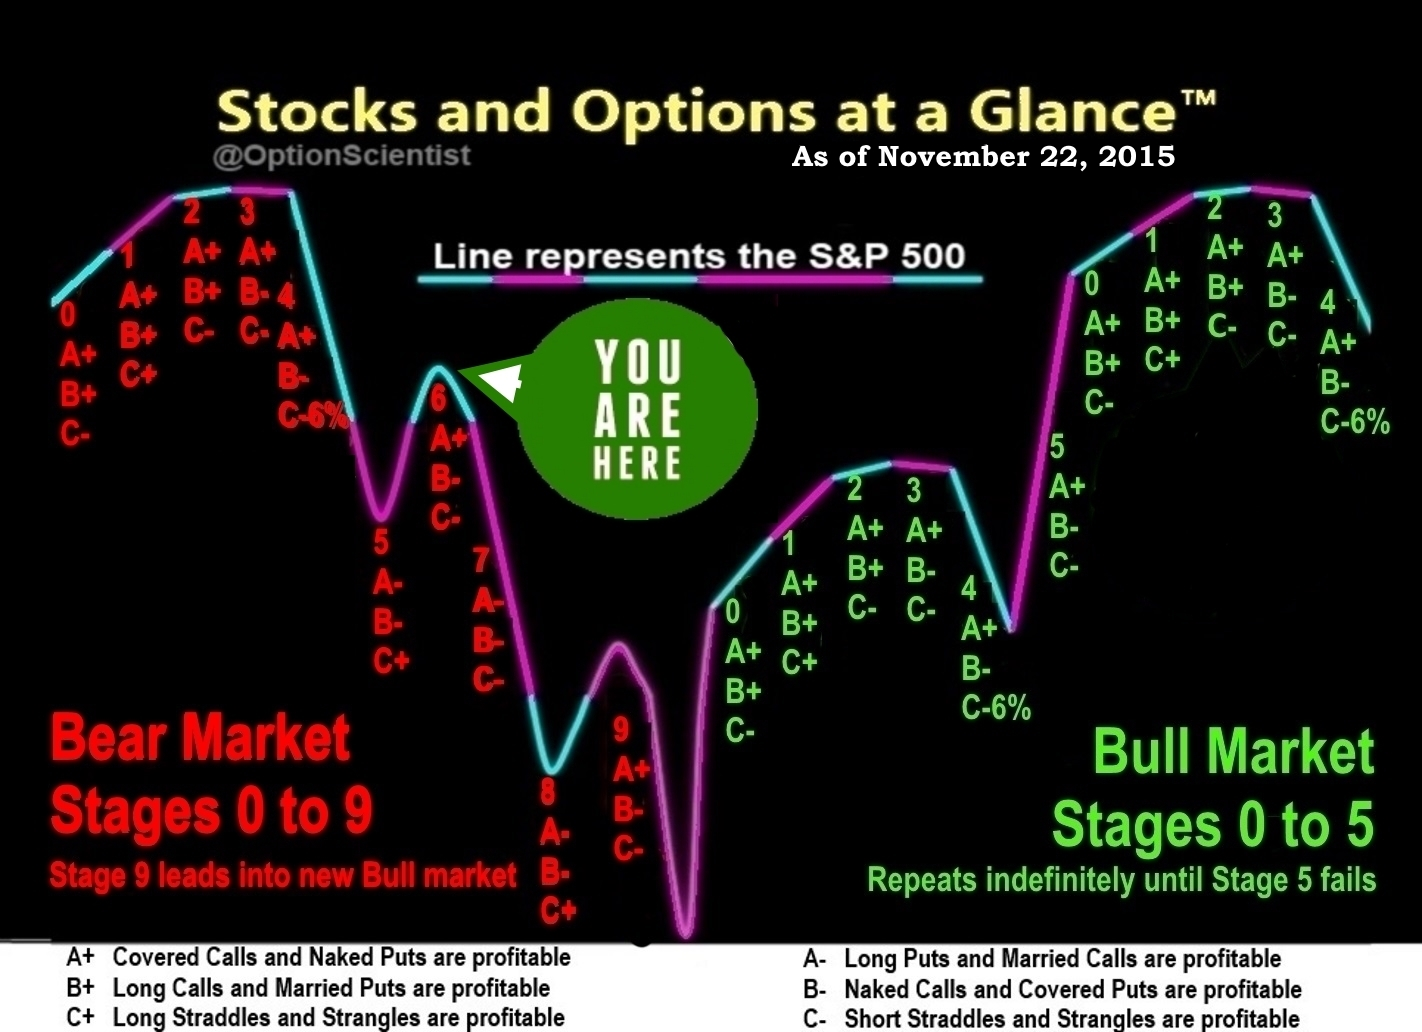 Stocks and Options at a Glance 11-22-15